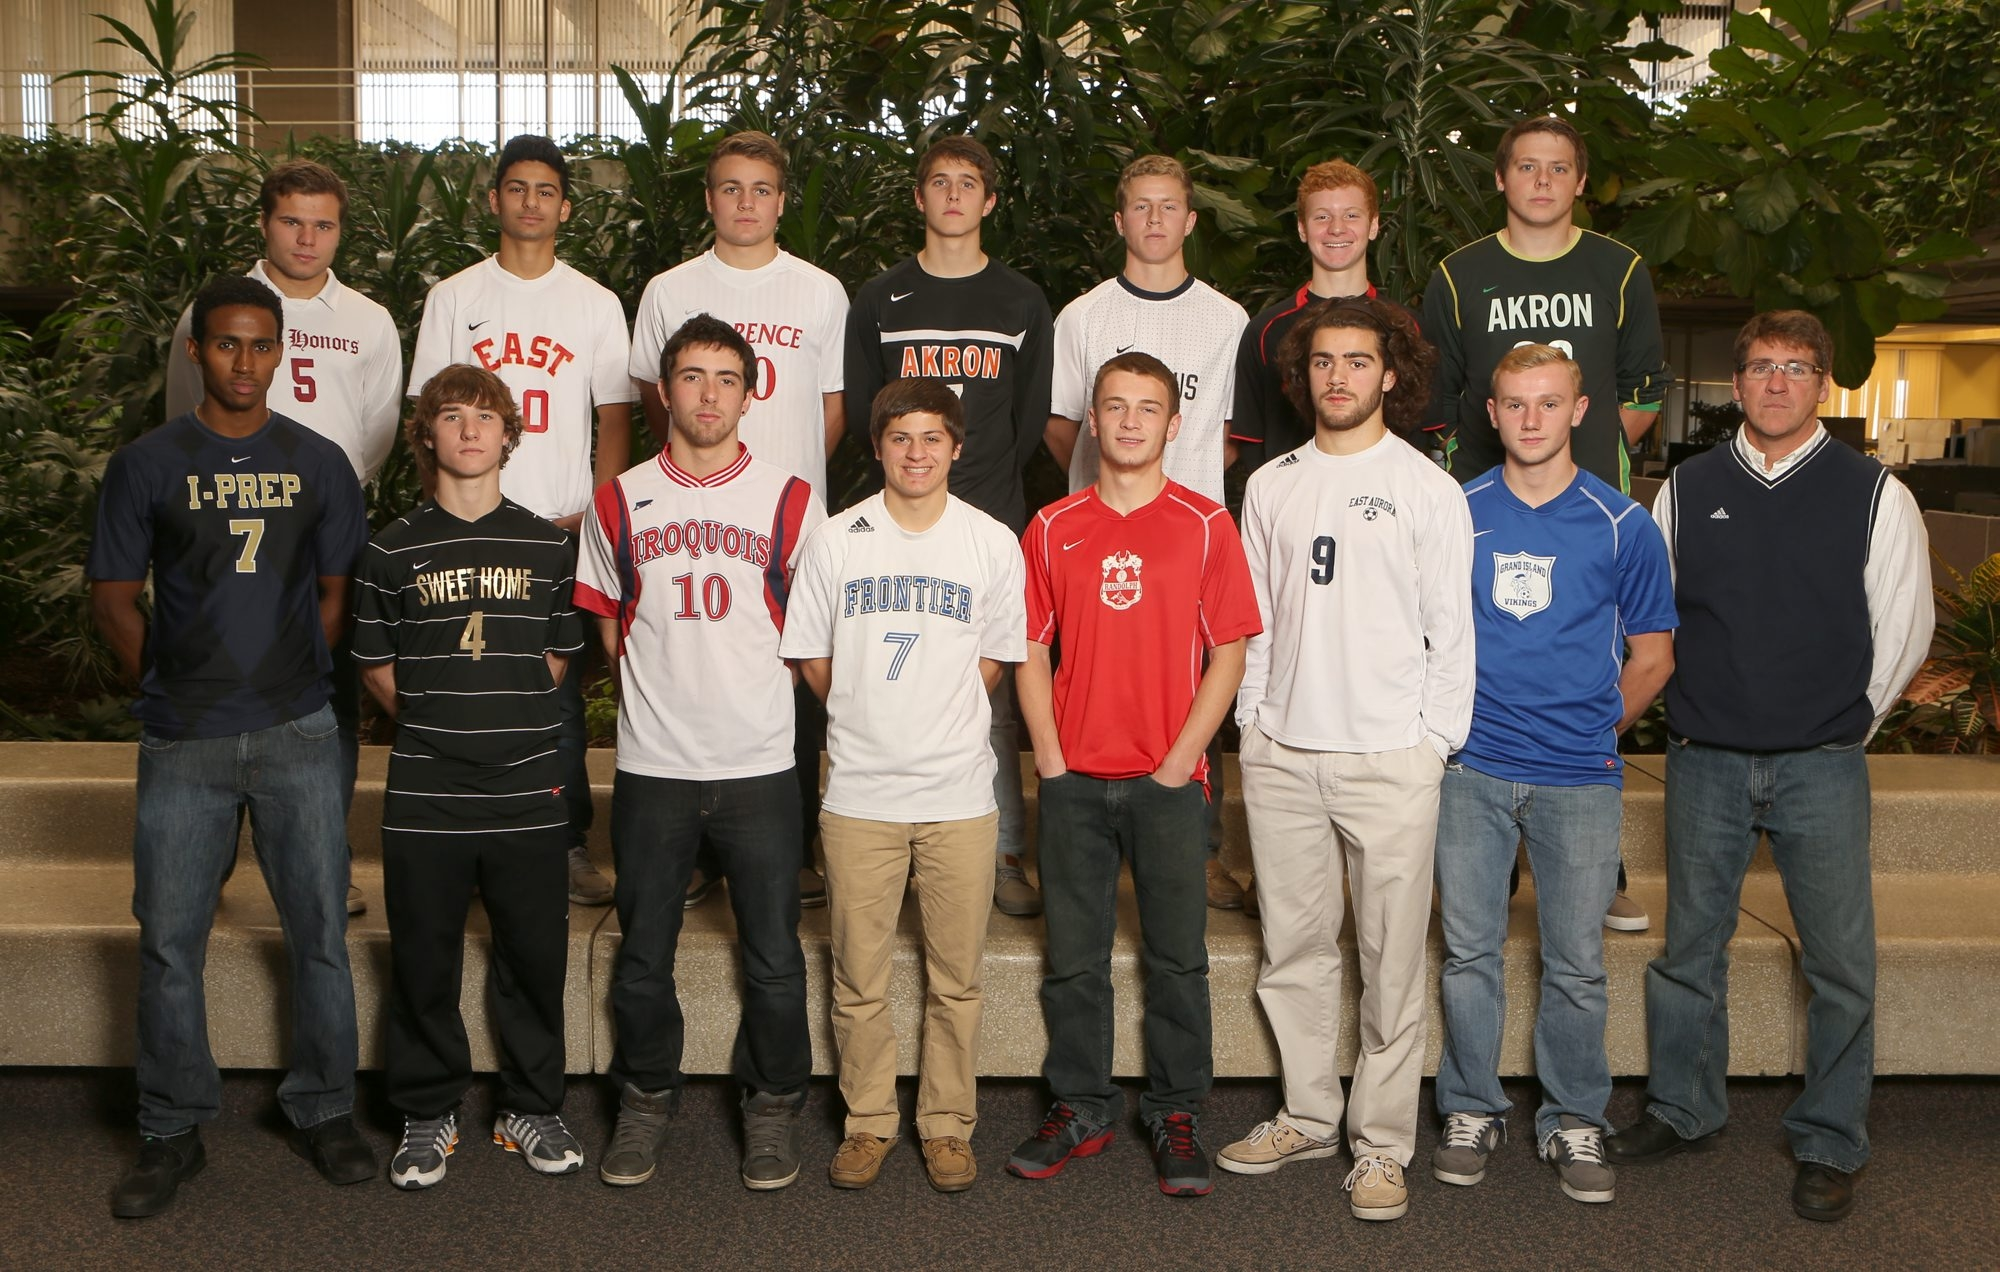 Members of the All-WNY Boys Soccer Team are, front row from left: Ezana Kahsay, I-Prep; Bryan Daigler, Sweet Home; Drew Braun, Iroquois; Brandon Galanti, Frontier; Mathew Born, Randolph; Kyle Kleckner, East Aurora; Ryan Ross, Grand Island, and Coach of the Year Kevin Beale, East Aurora. Back row, from left: Matt Sutter, City Honors; Vickram Goel, Williamsville East; Patrick Schulz, Clarence; Chris Mayrose, Akron; Jake Montante, Canisius; Sam Wasson, Clarence; and Austin Medole, Akron.